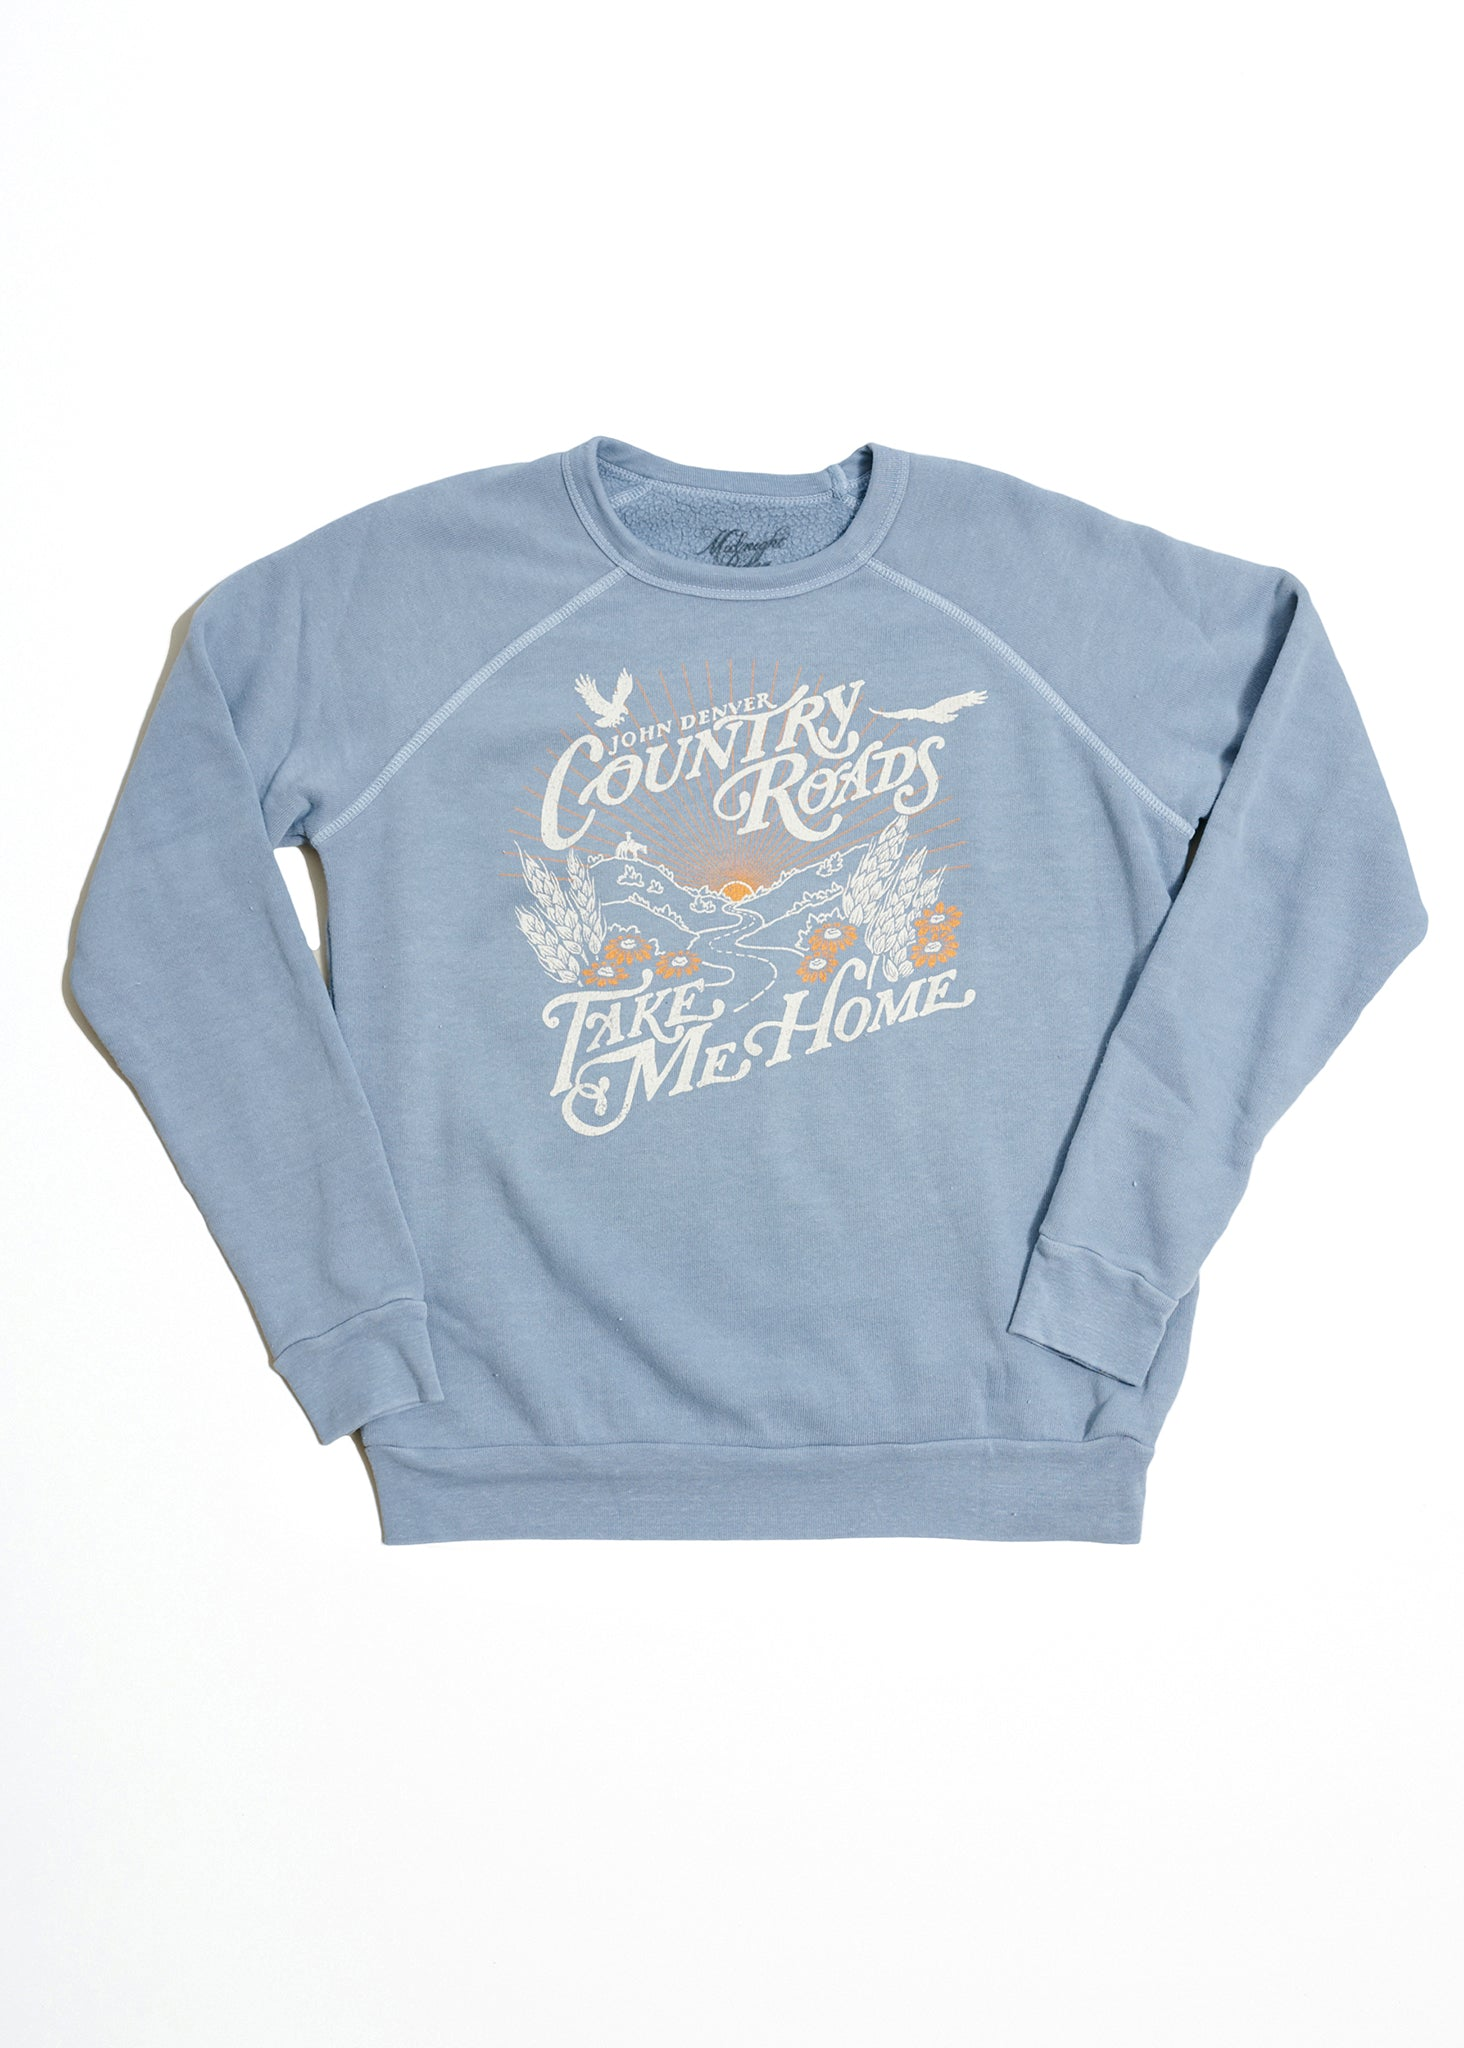 John Denver Country Roads Women's Sweatshirt - Women's Tee Shirt - Midnight Rider